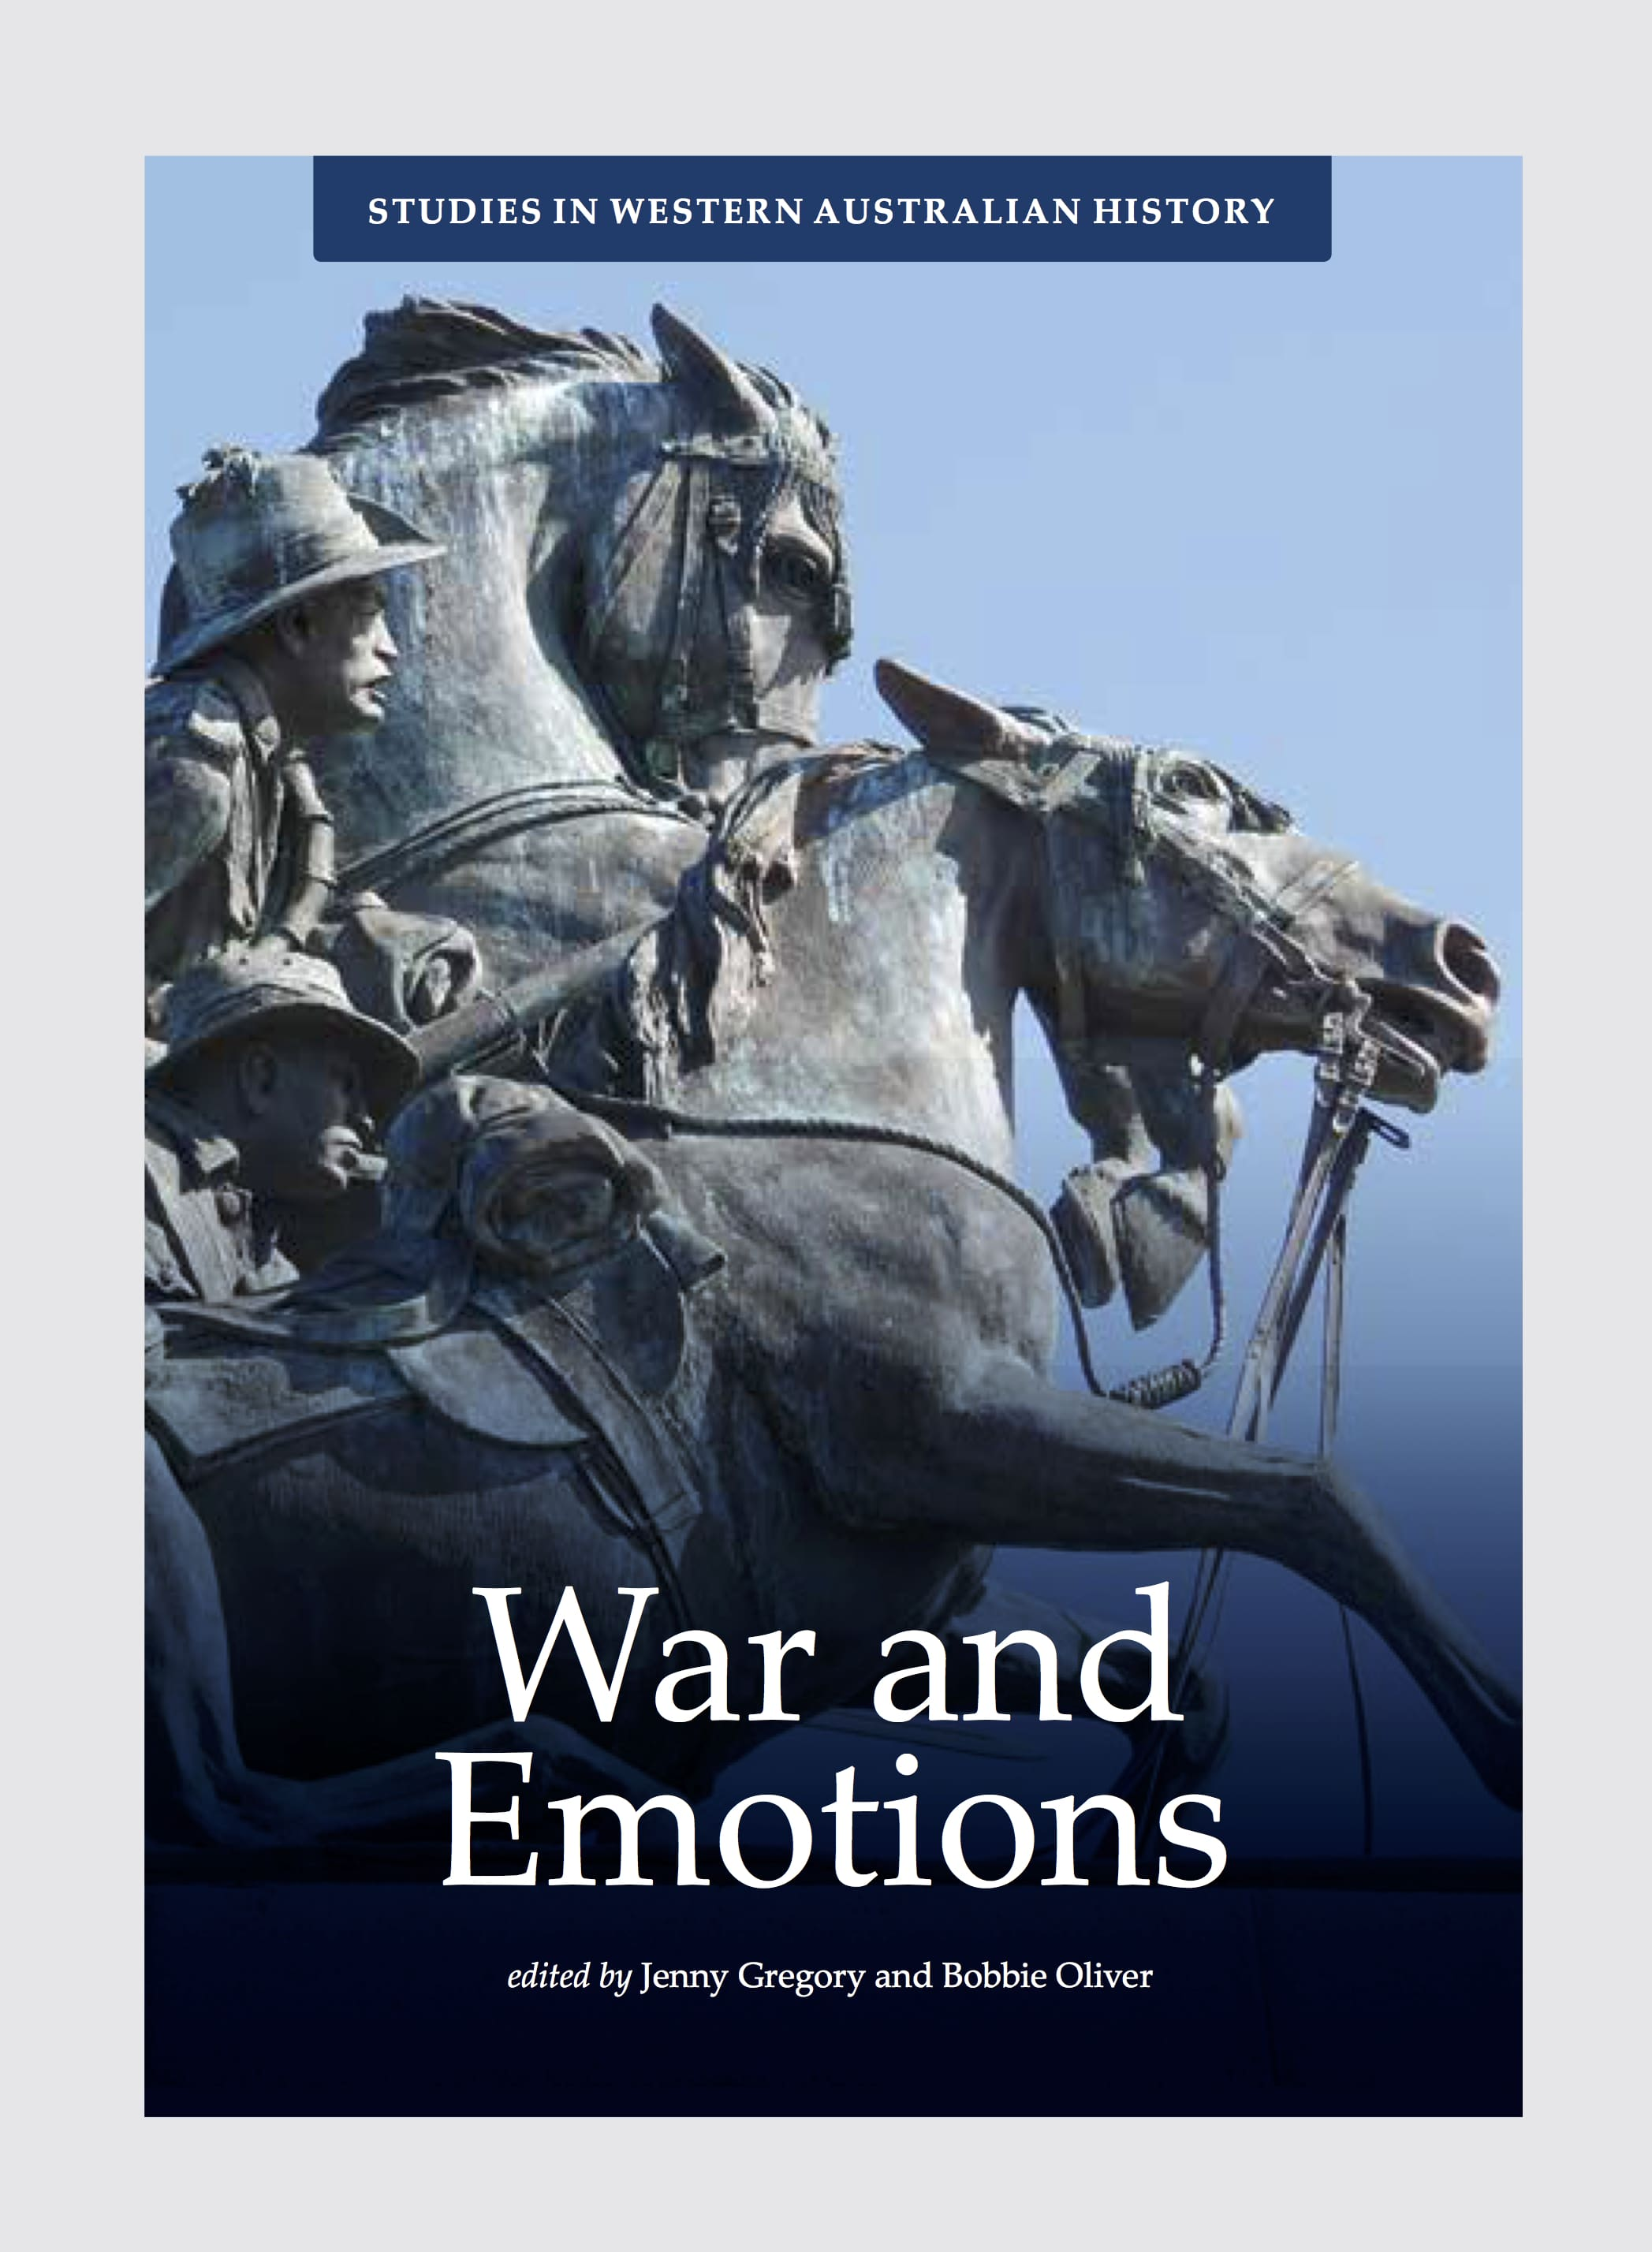 152581_War and Emotions Front Cover-min.jpg